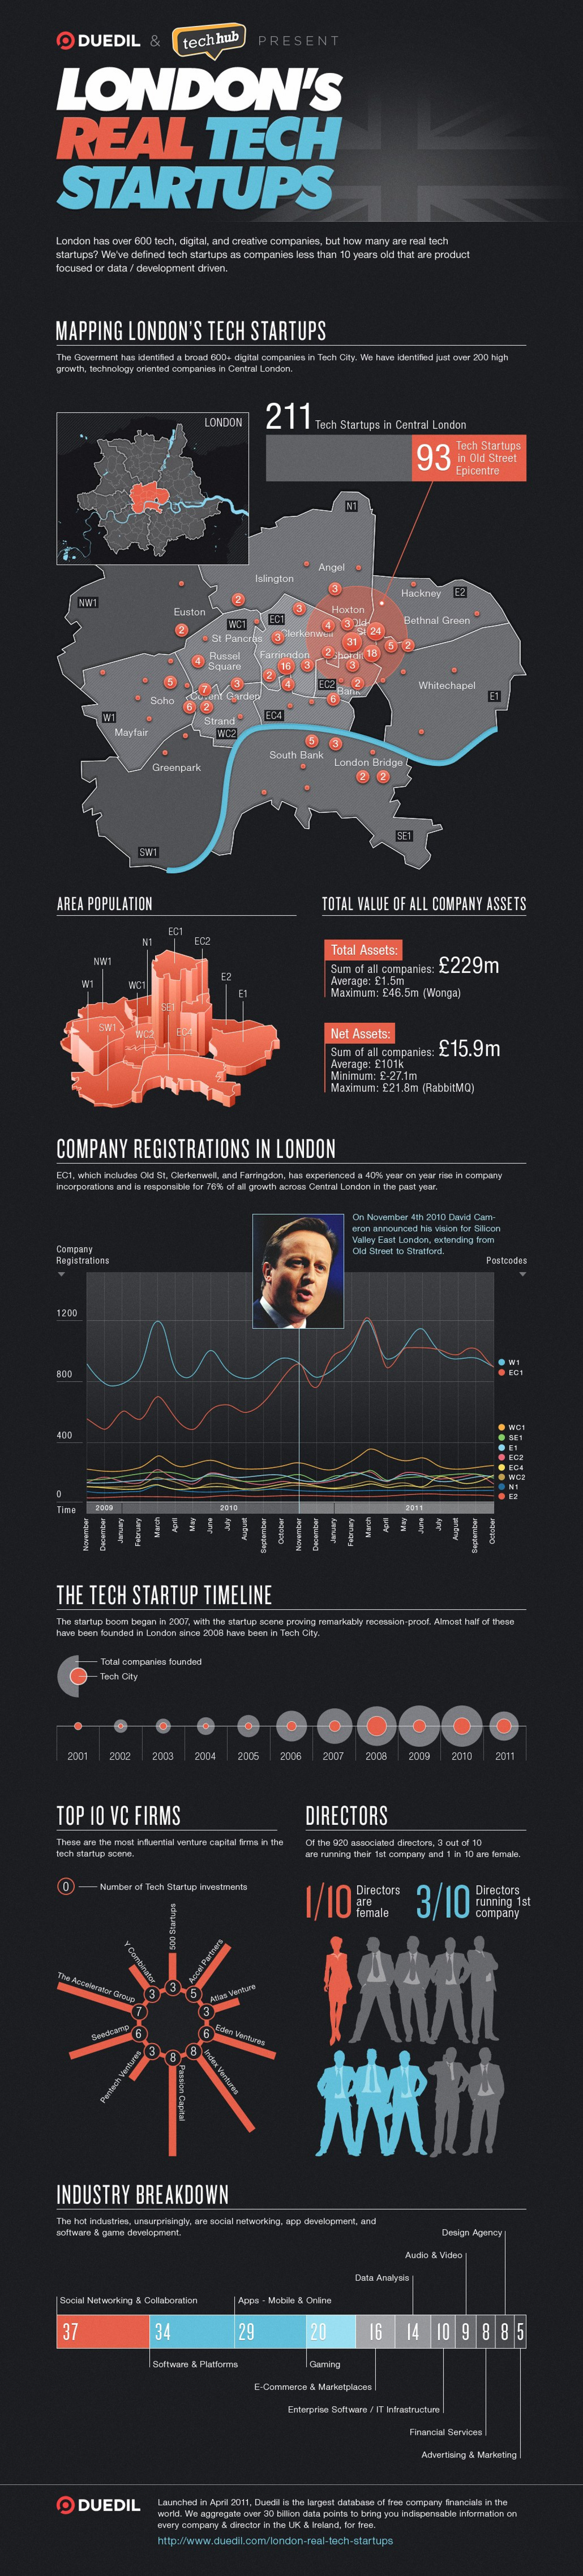 London's Real Tech Startups Infographic